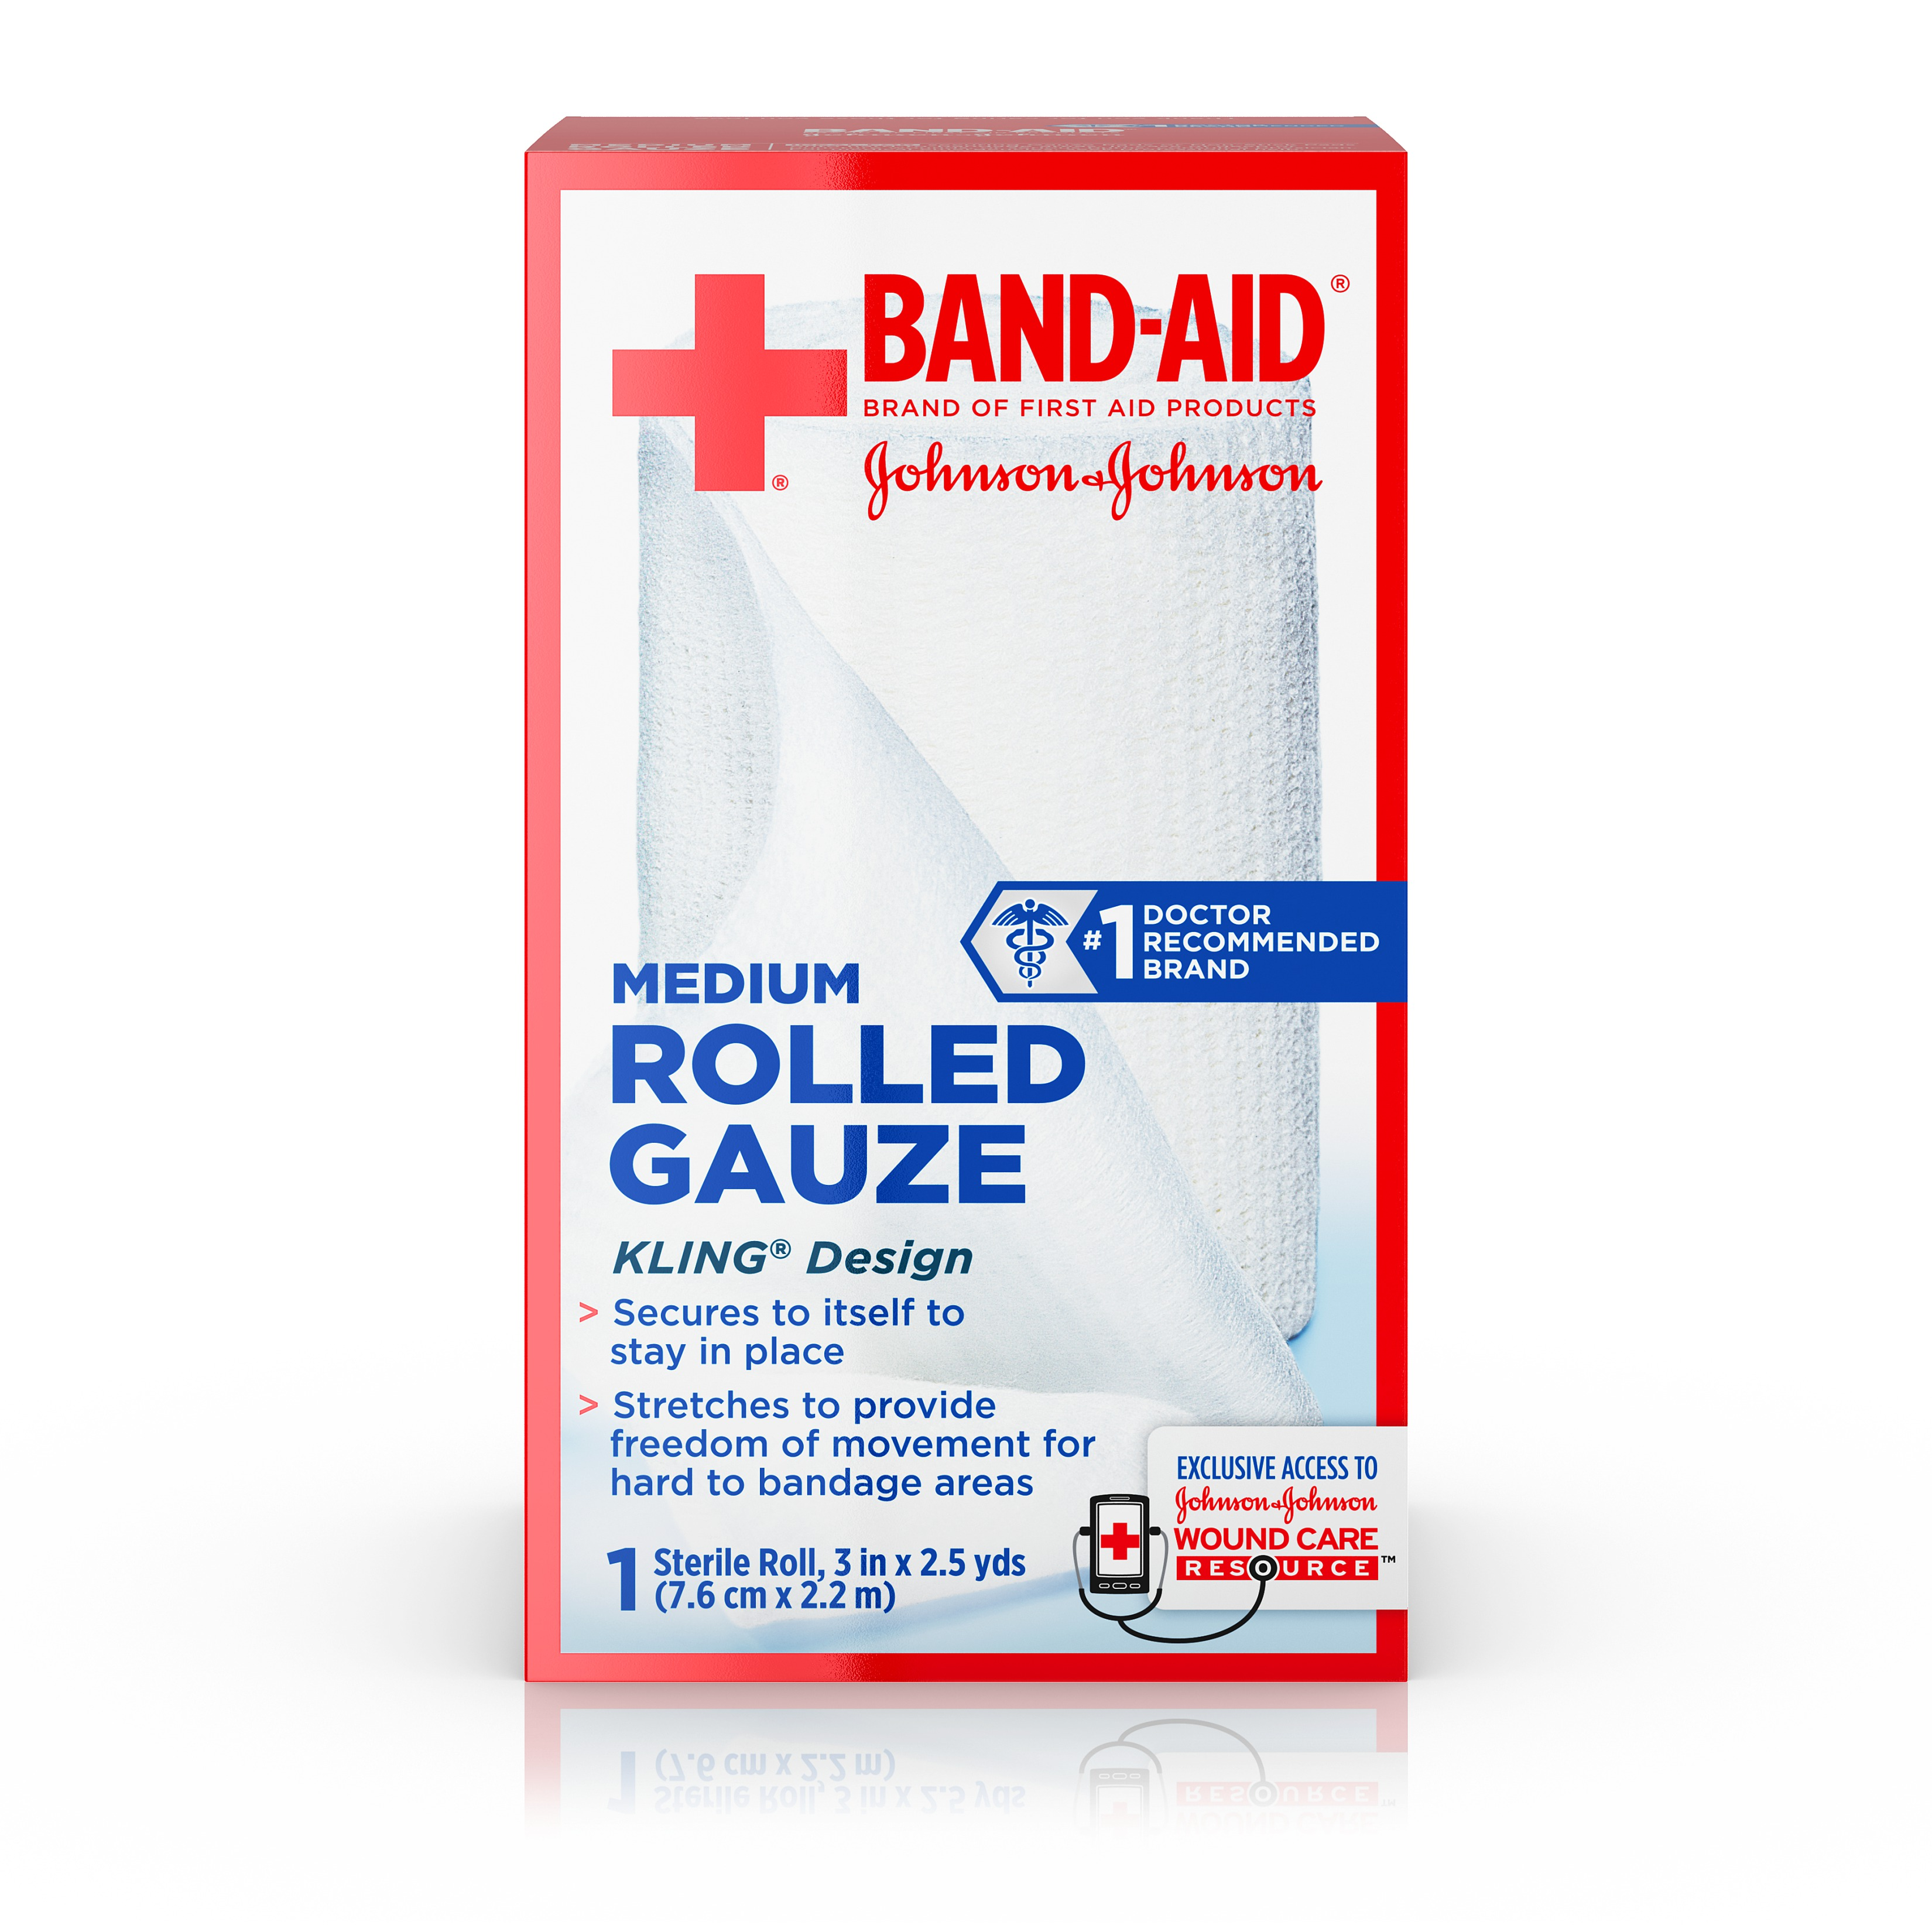 Band-Aid Brand of First Aid Products Rolled Gauze, 3 Inches by 2.5 Yards